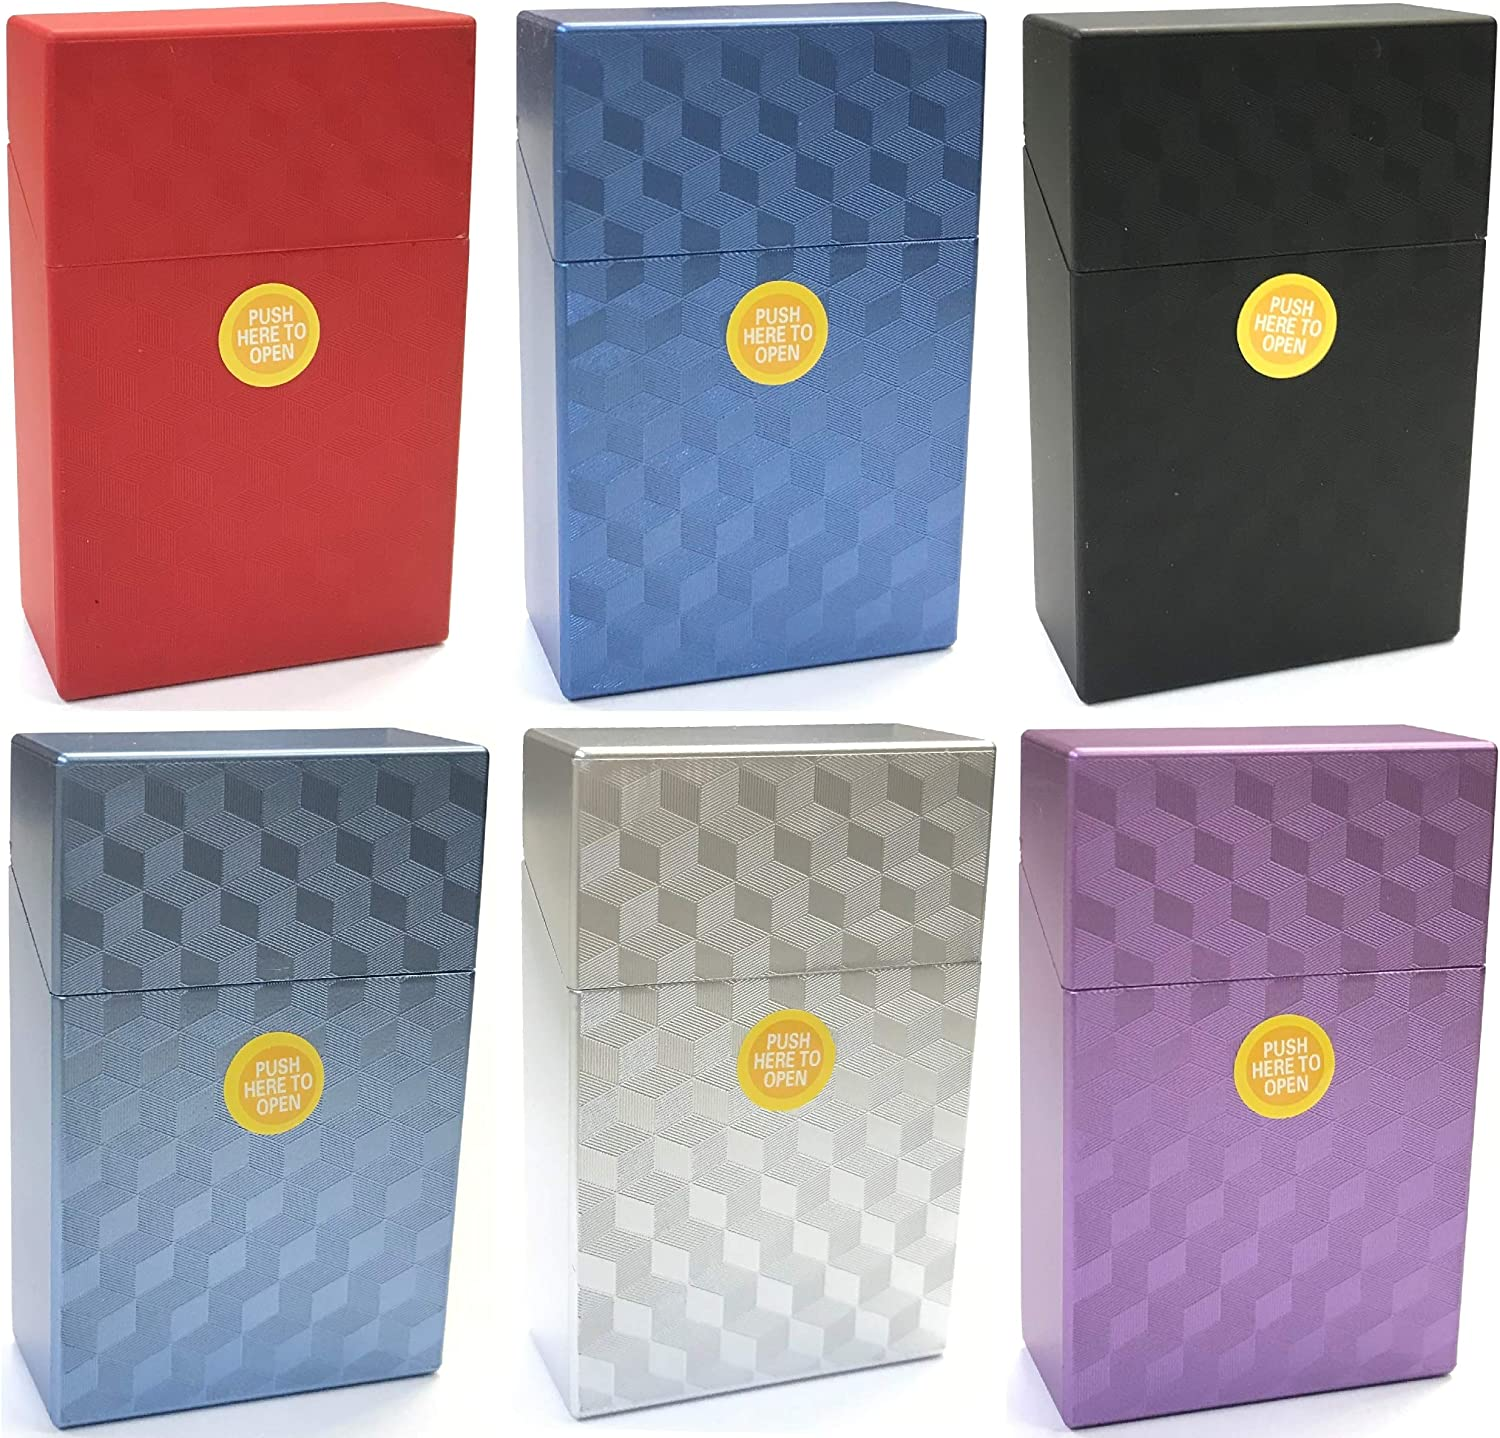 HHB Eclipse Assorted Cube Designs C Cigarette Cheap mail Max 45% OFF order specialty store Crushproof Plastic